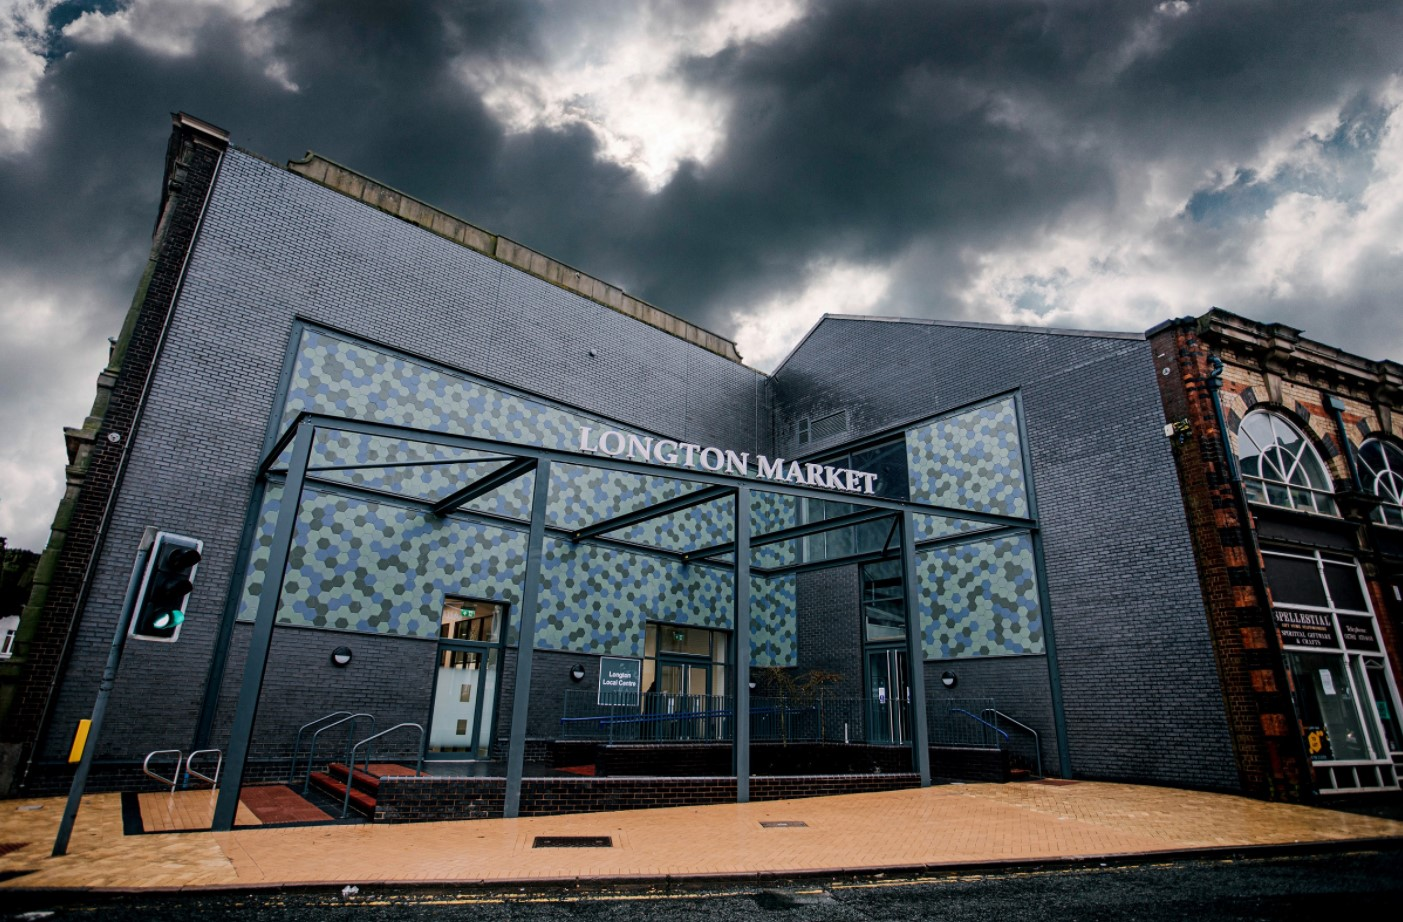 G F Tomlinson restores historical town halls and market hall in City of Stoke-on-Trent